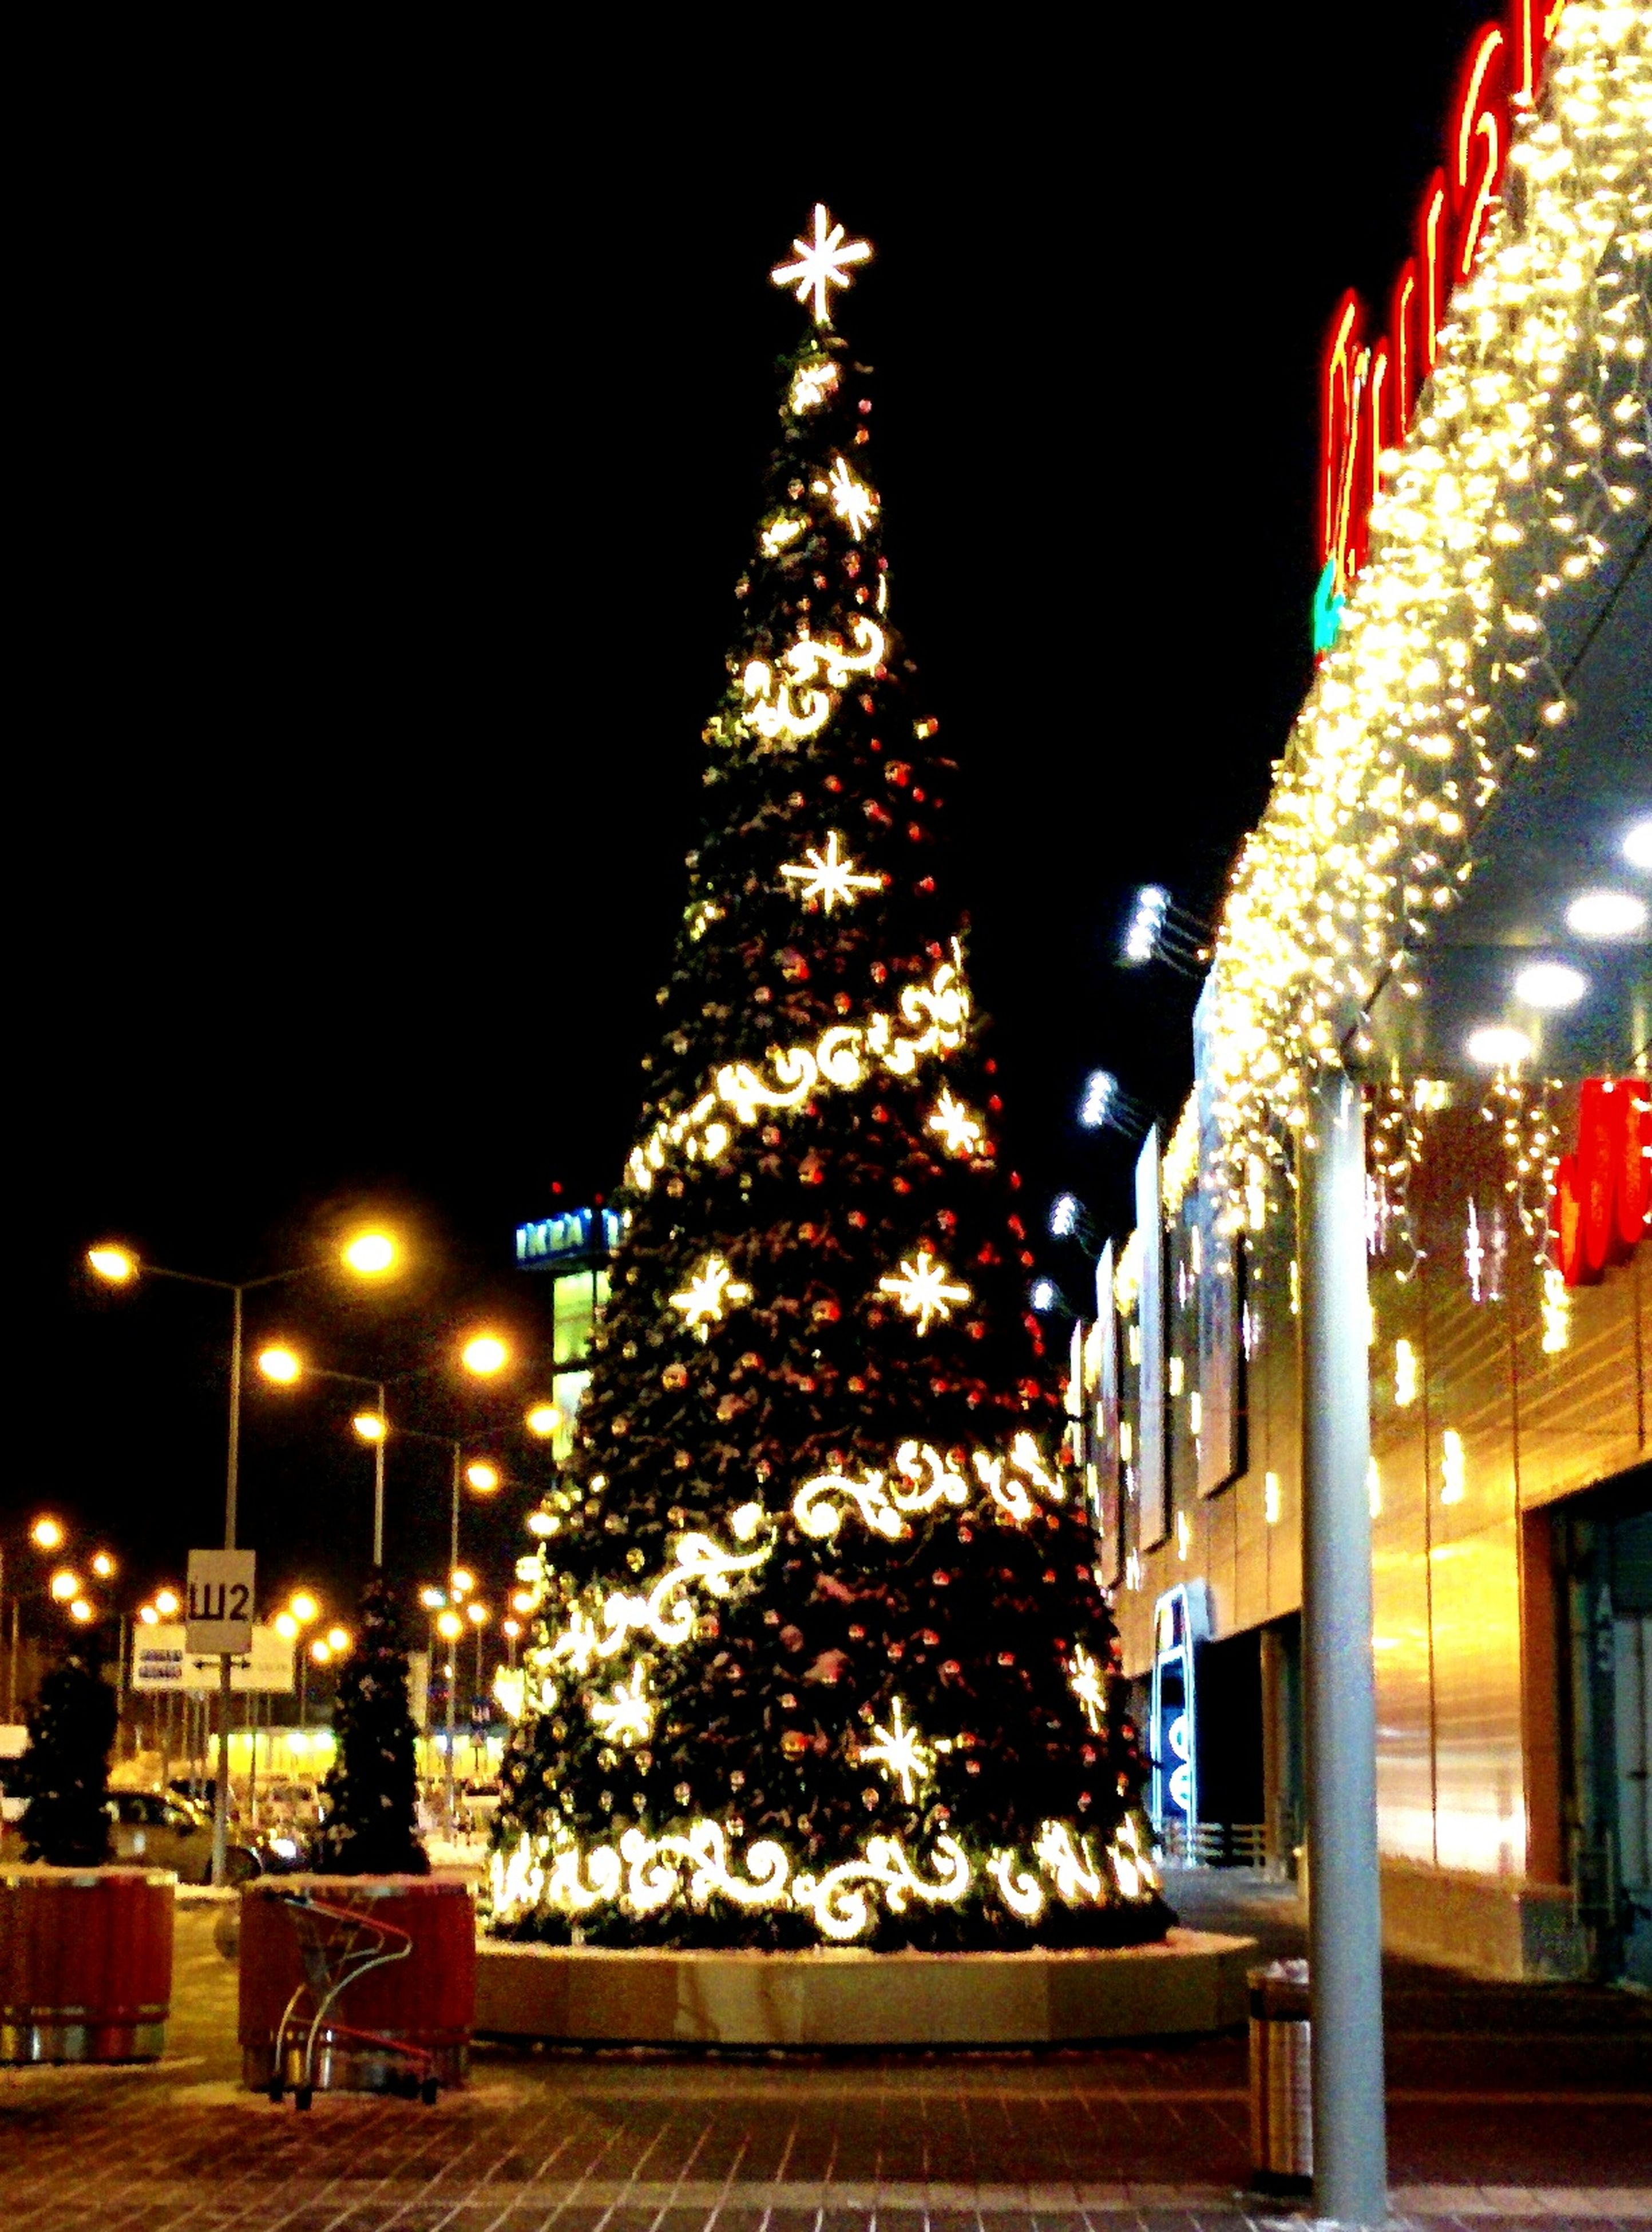 illuminated, night, lighting equipment, decoration, architecture, built structure, building exterior, tree, christmas, celebration, christmas decoration, low angle view, street light, tradition, religion, hanging, christmas lights, lantern, christmas tree, electric light